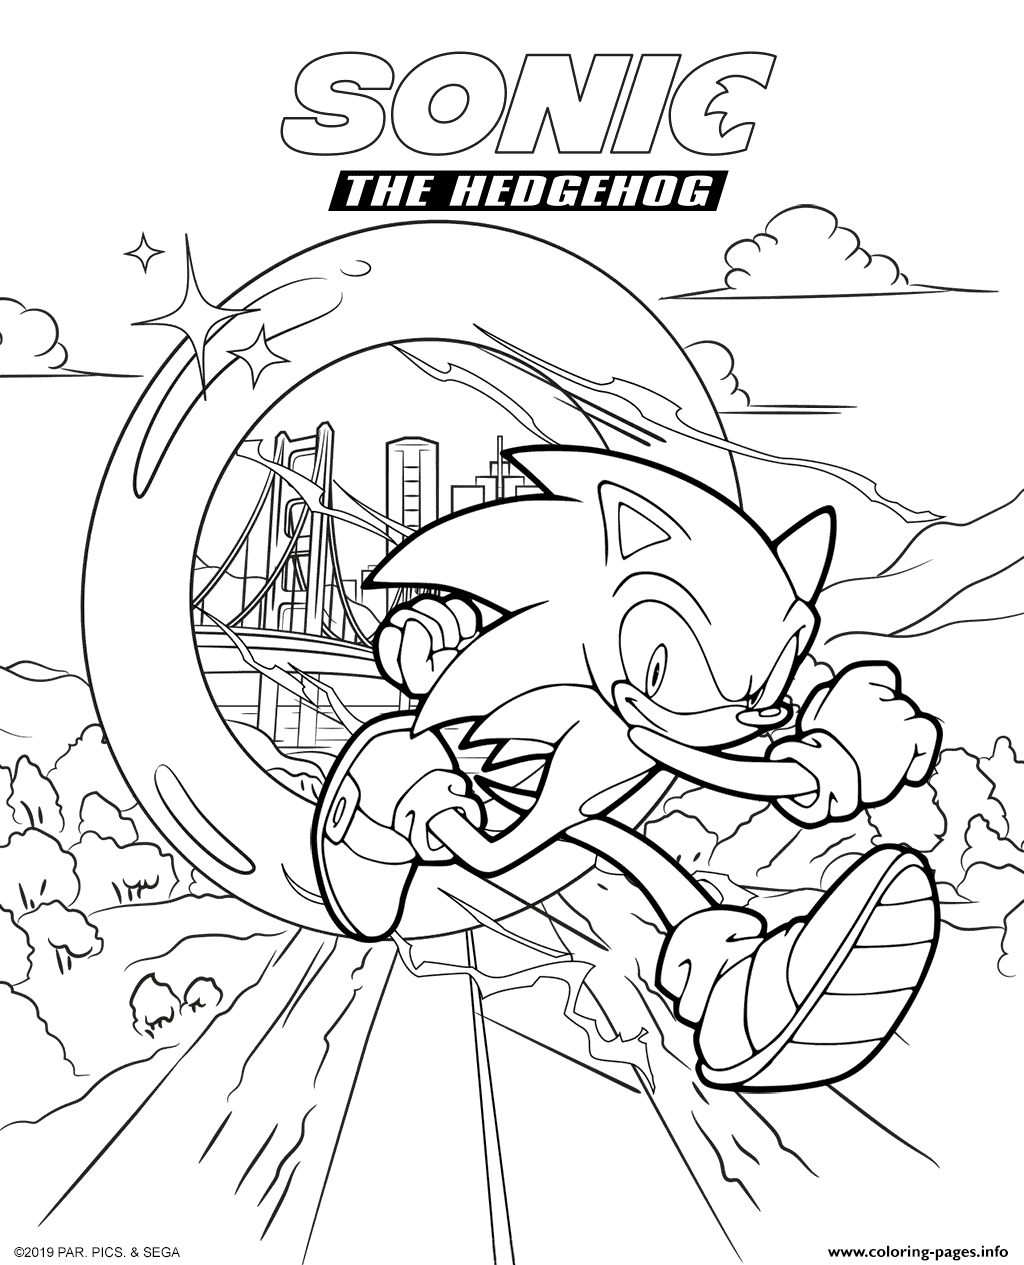 Print Sonic The Hedgehog Movie 2020 Coloring Pages Coloring Pages Hedgehog Movie Hedgehog Drawing